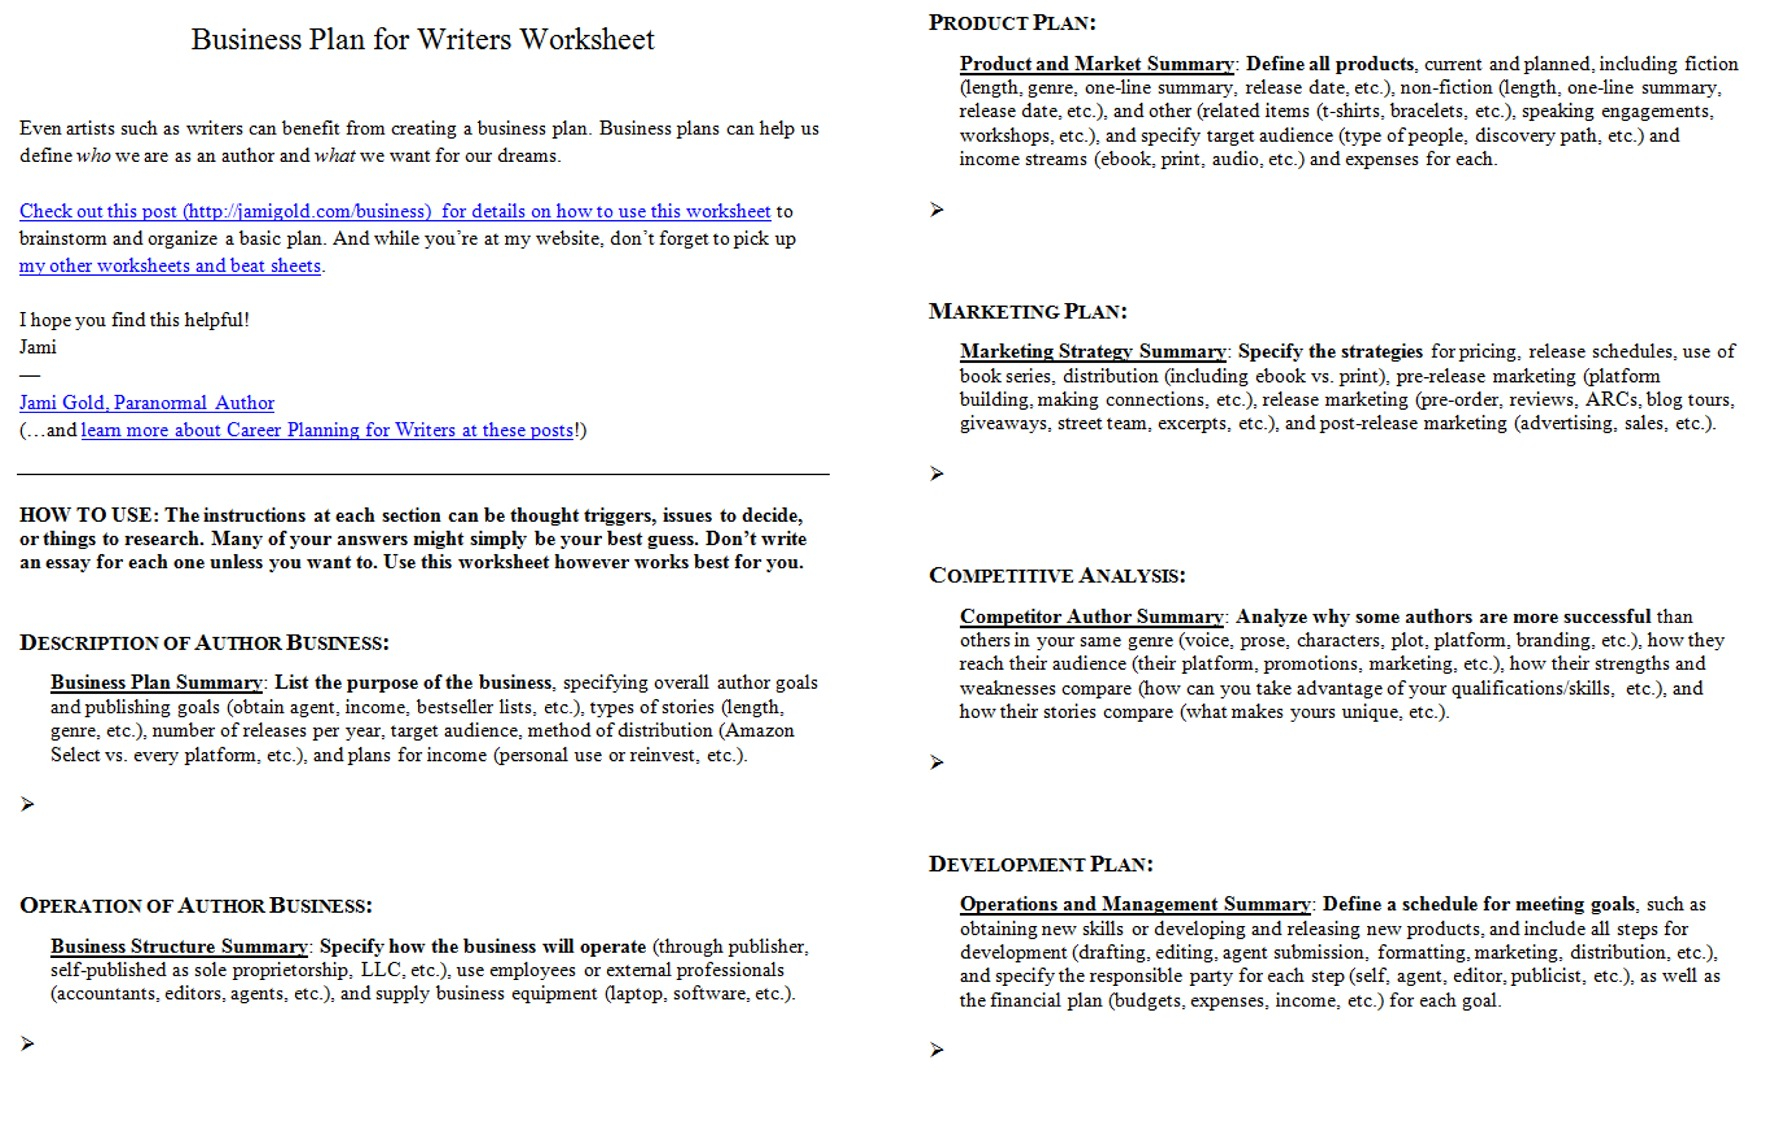 Aldiablosus  Pleasing Worksheets For Writers  Jami Gold Paranormal Author With Likable Screen Shot Of Both Pages Of The Business Plan For Writers Worksheet With Adorable Pov Worksheet Also Quadratic Function Worksheets In Addition Letter B Writing Worksheets And Math Worksheets Proportions As Well As Vivid Verb Worksheets Additionally Worksheets On Inferences From Jamigoldcom With Aldiablosus  Likable Worksheets For Writers  Jami Gold Paranormal Author With Adorable Screen Shot Of Both Pages Of The Business Plan For Writers Worksheet And Pleasing Pov Worksheet Also Quadratic Function Worksheets In Addition Letter B Writing Worksheets From Jamigoldcom